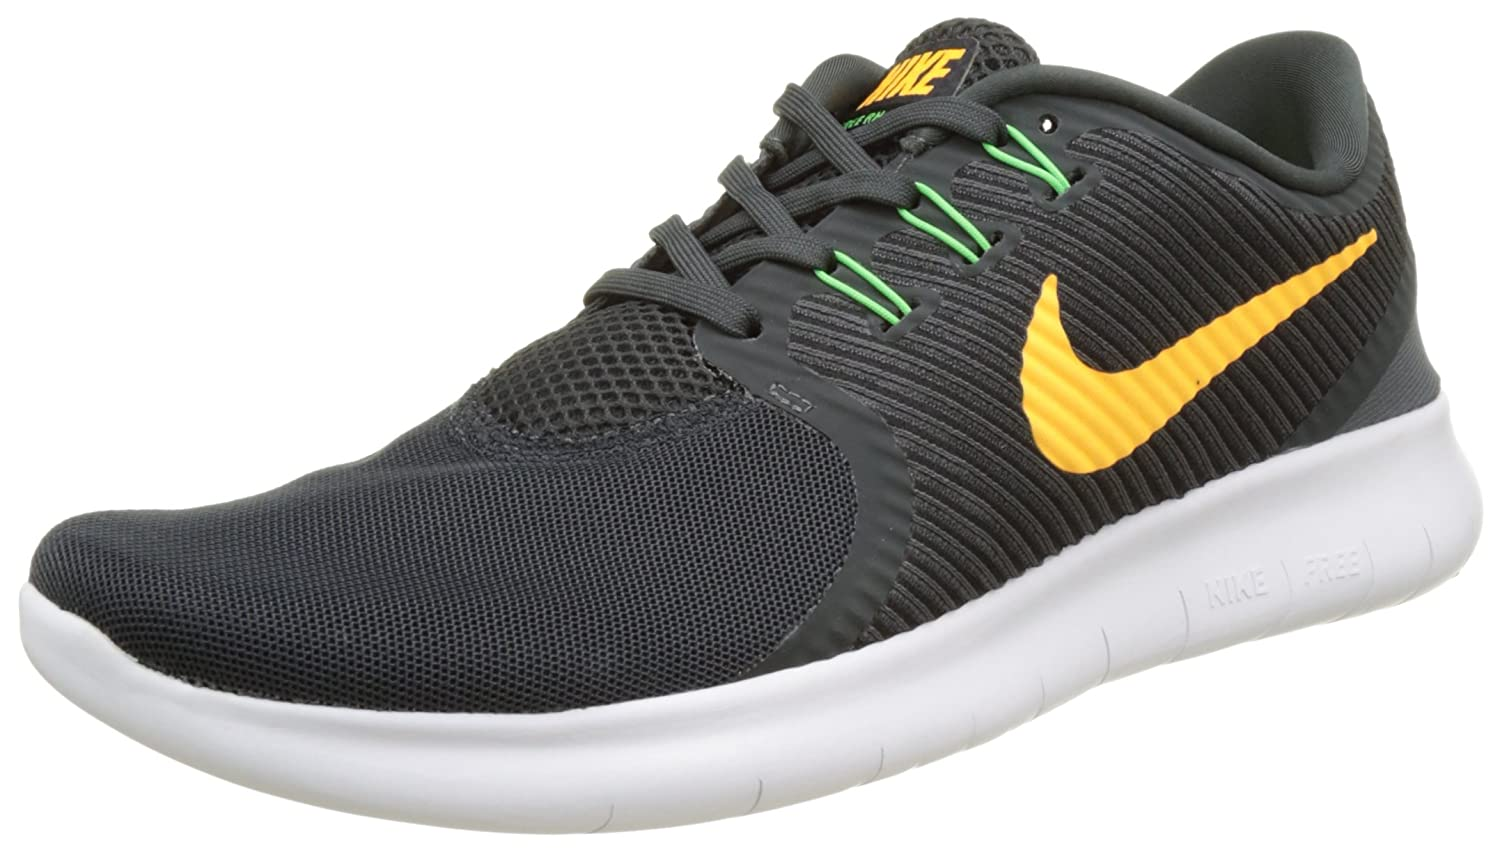 6b2351d4b312 Nike Free RN CMTR, Chaussures de Running Entrainement Homme: Amazon.fr:  Chaussures et Sacs